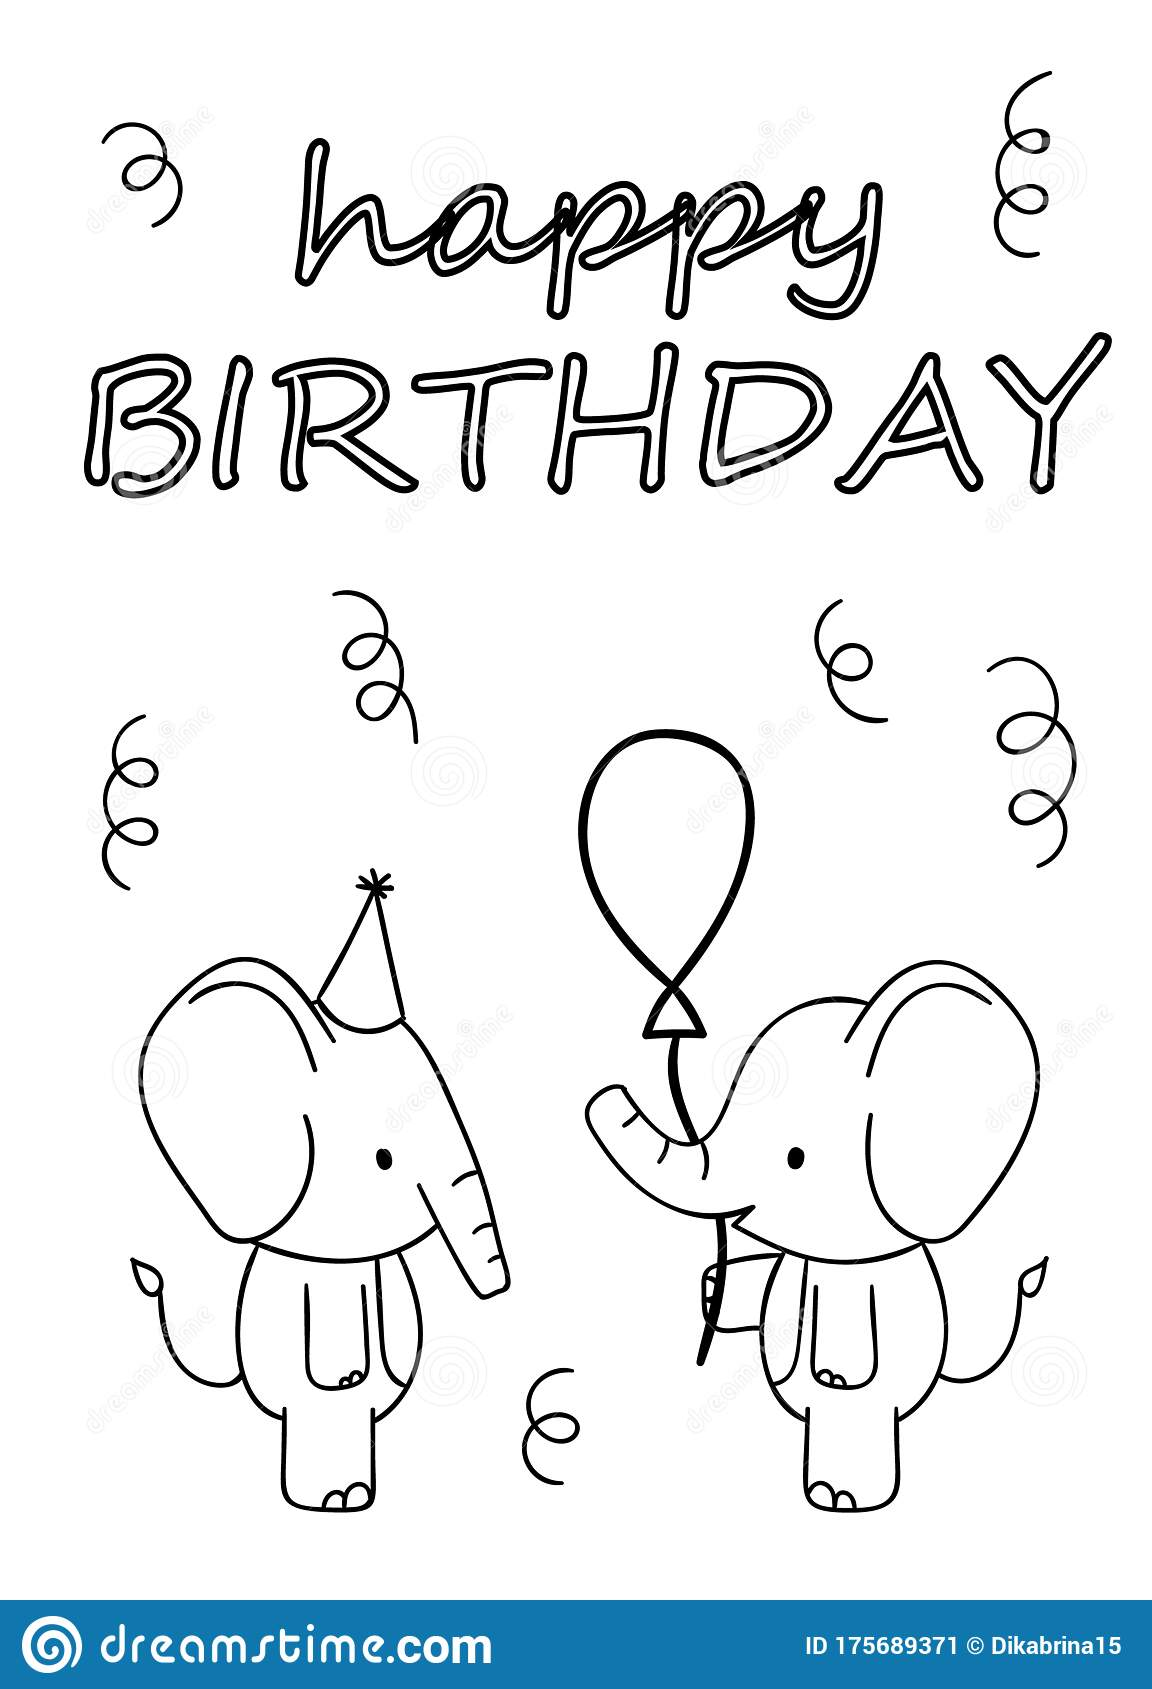 Coloring Pages, Black And White Cute Hand Drawn Elephant ...